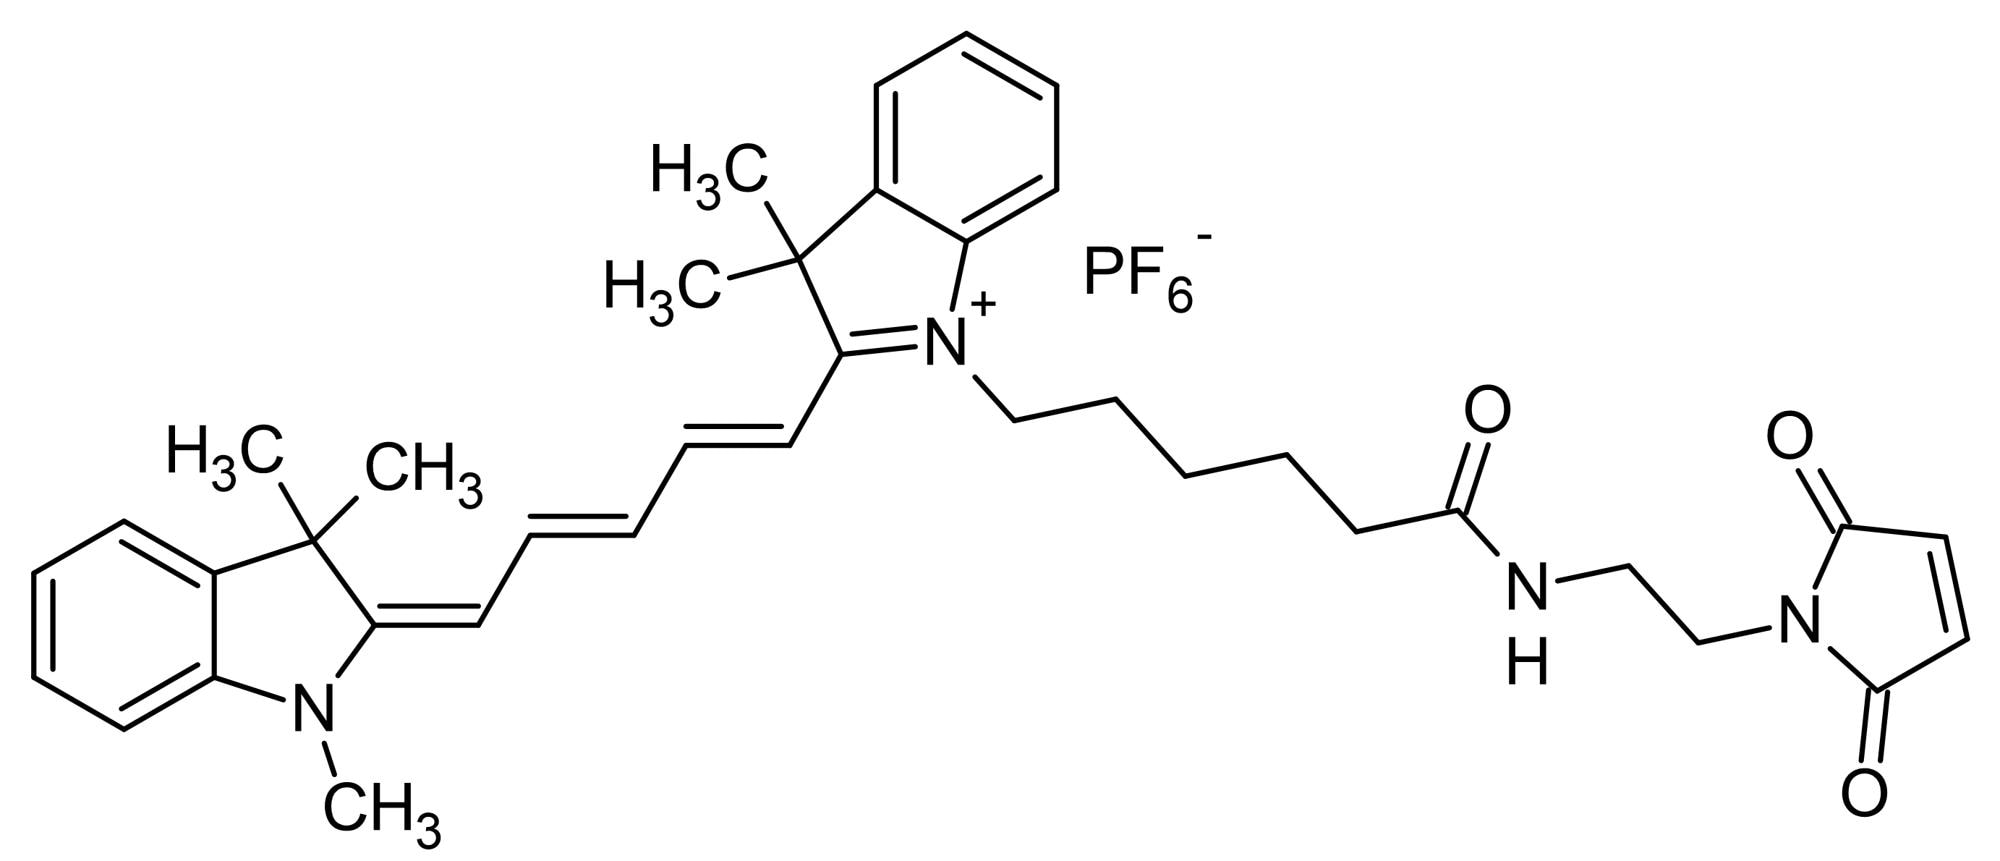 Chemical Structure - Cyanine5 maleimide, Red emitting fluorescent dye (ab146489)